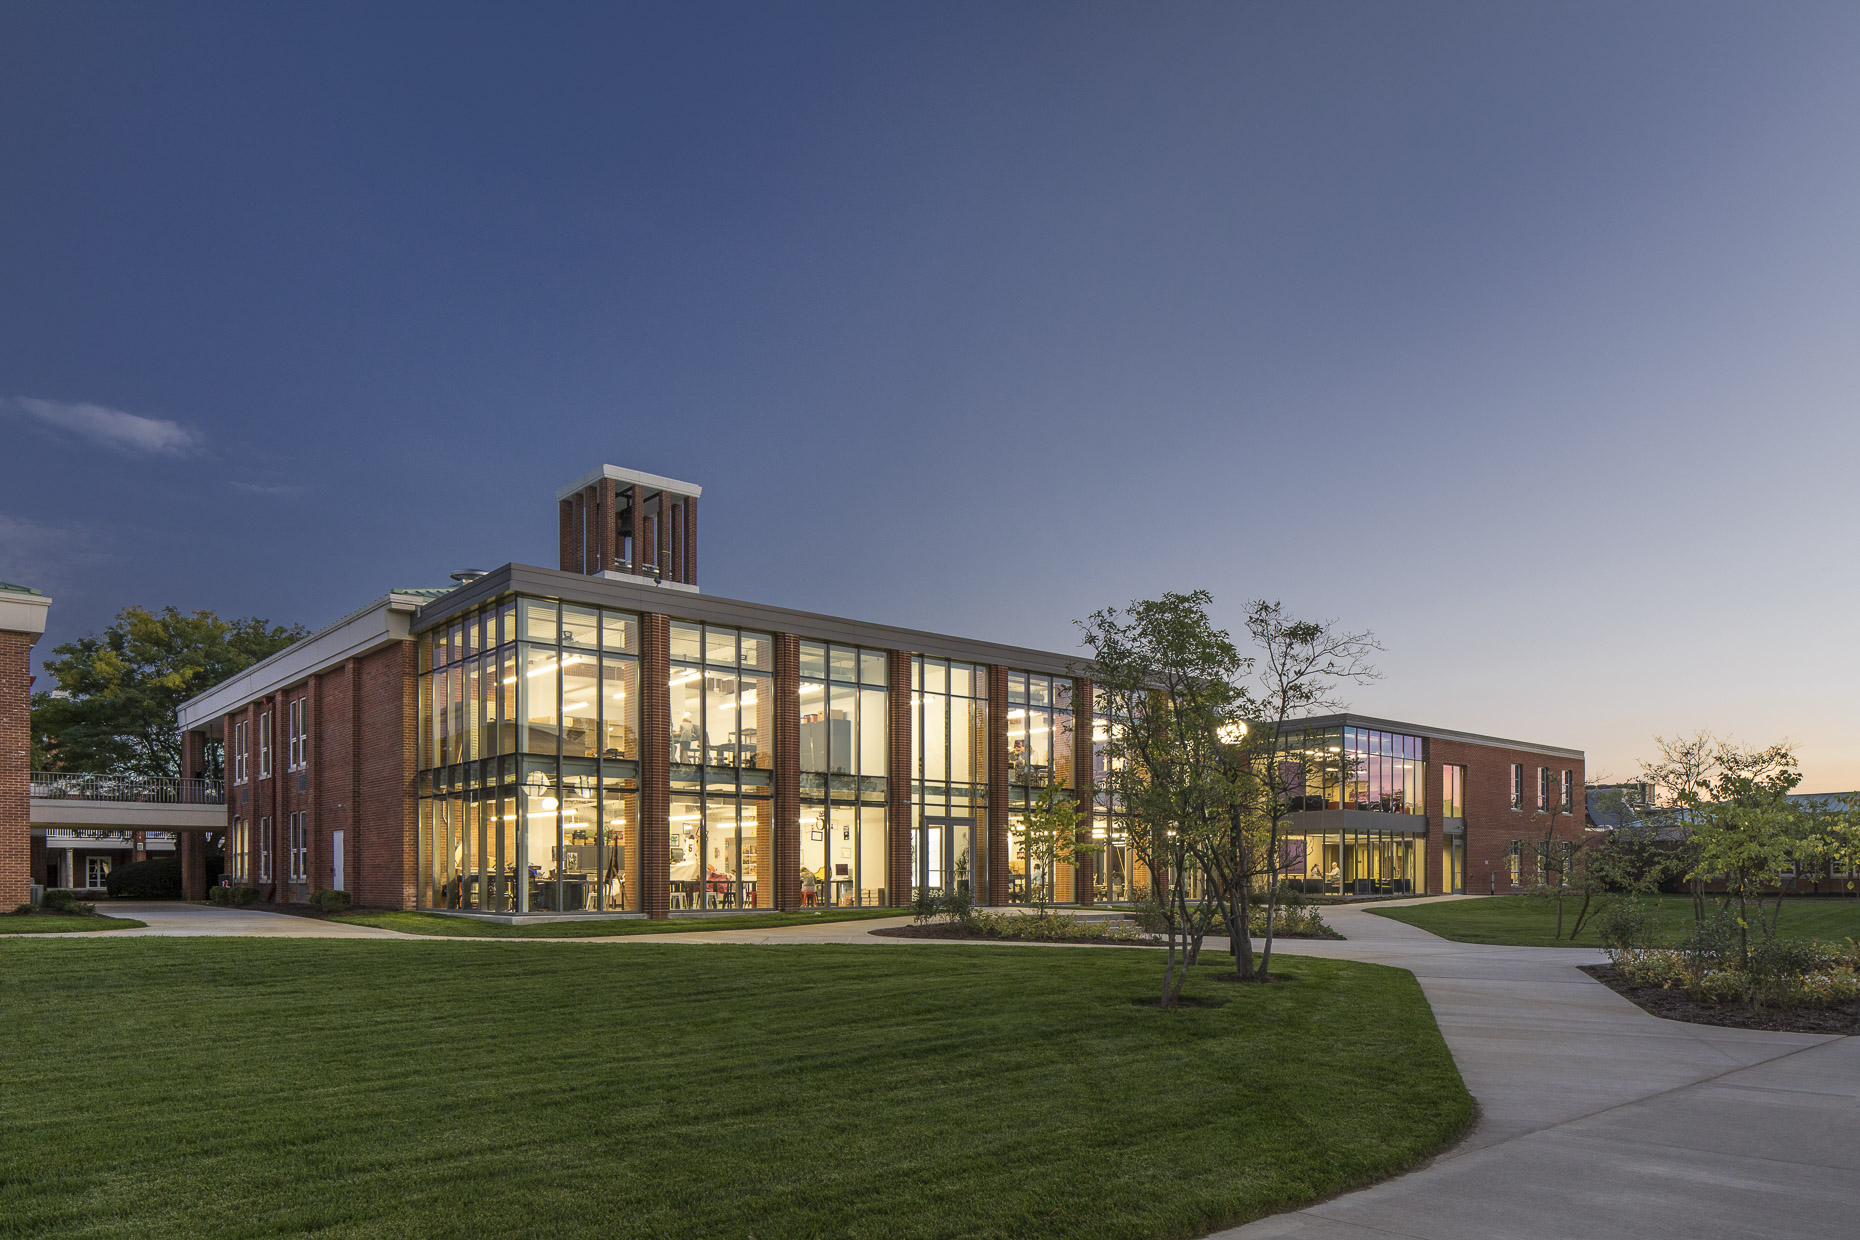 Columbus Academy by The Collaborative photographed by Brad Feinknopf based in Columbus, Ohio